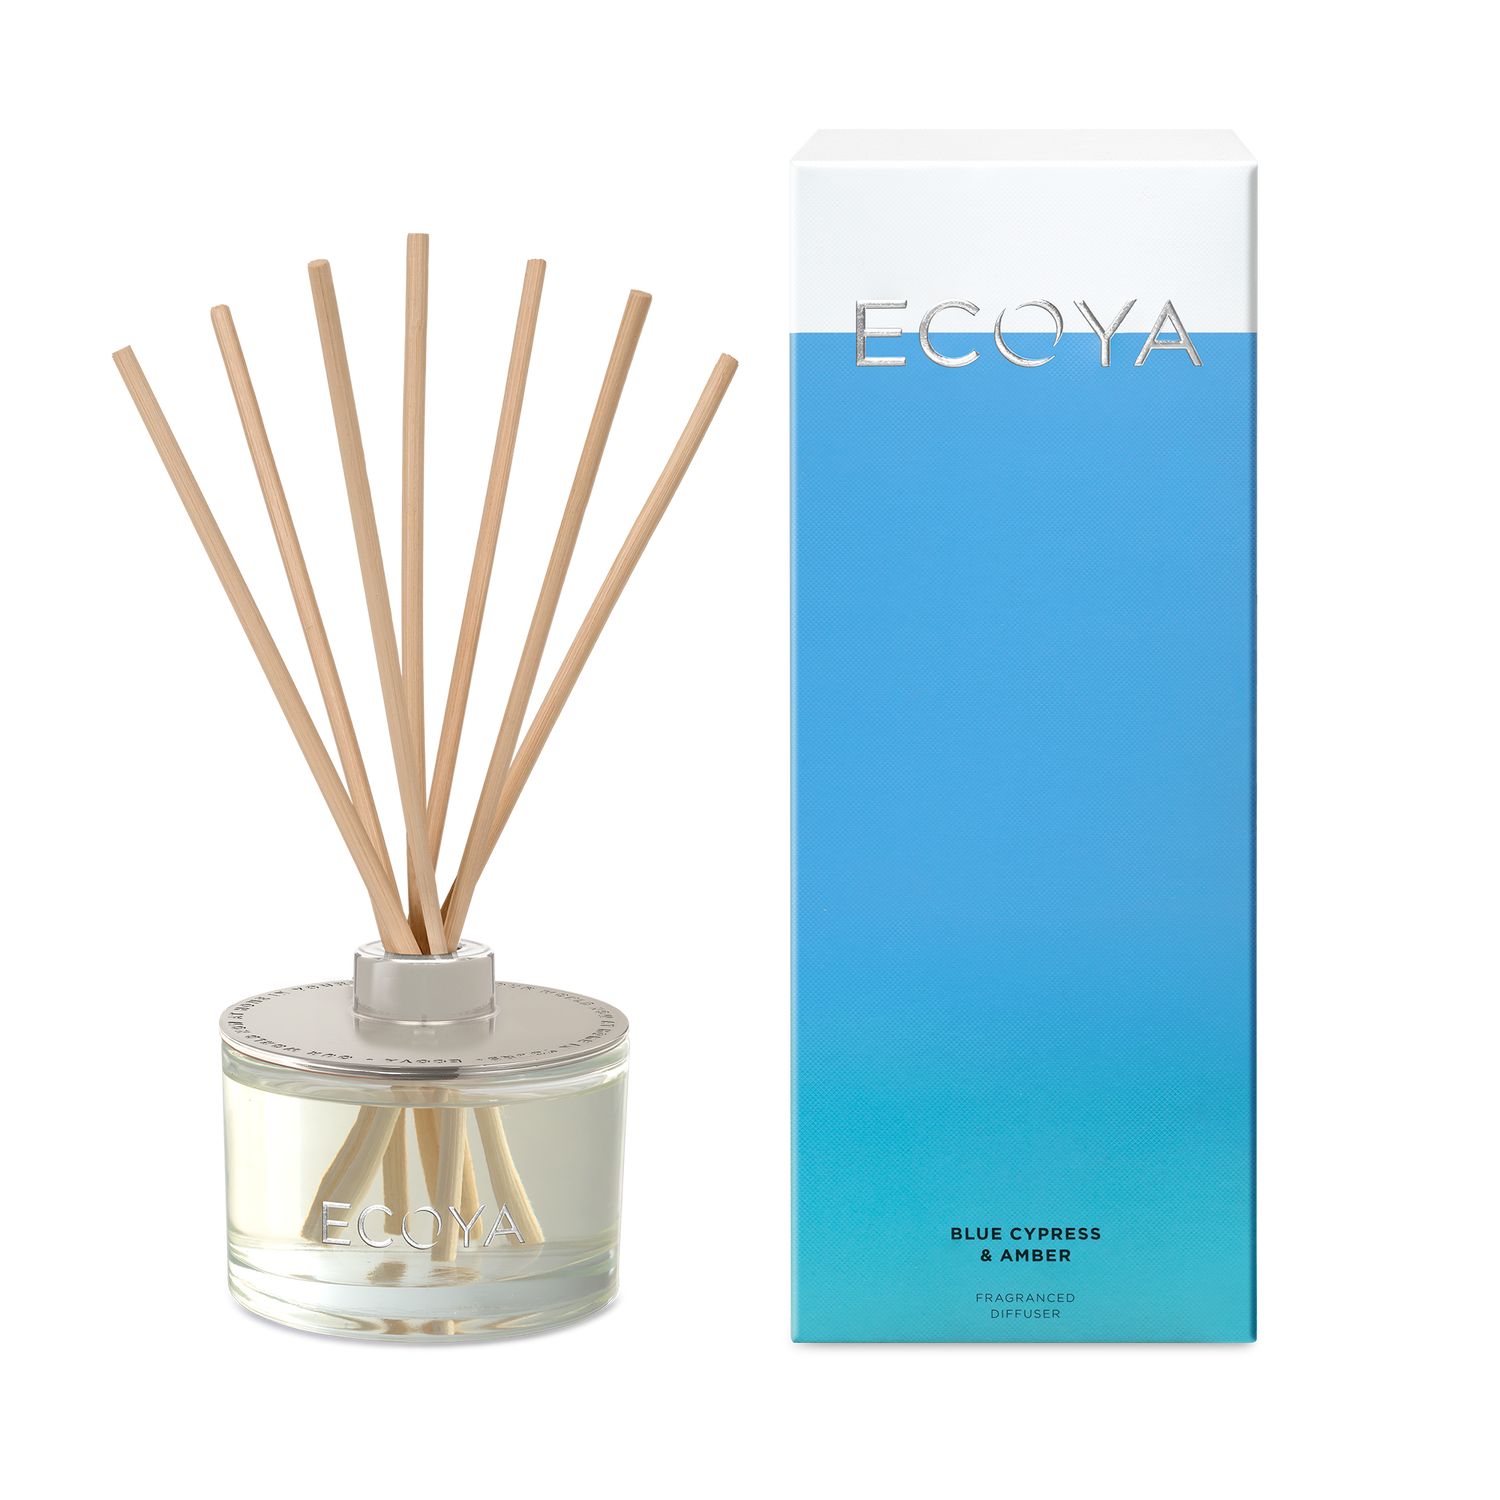 Blue Cypress & Amber Fragranced Diffuser (10753497682)